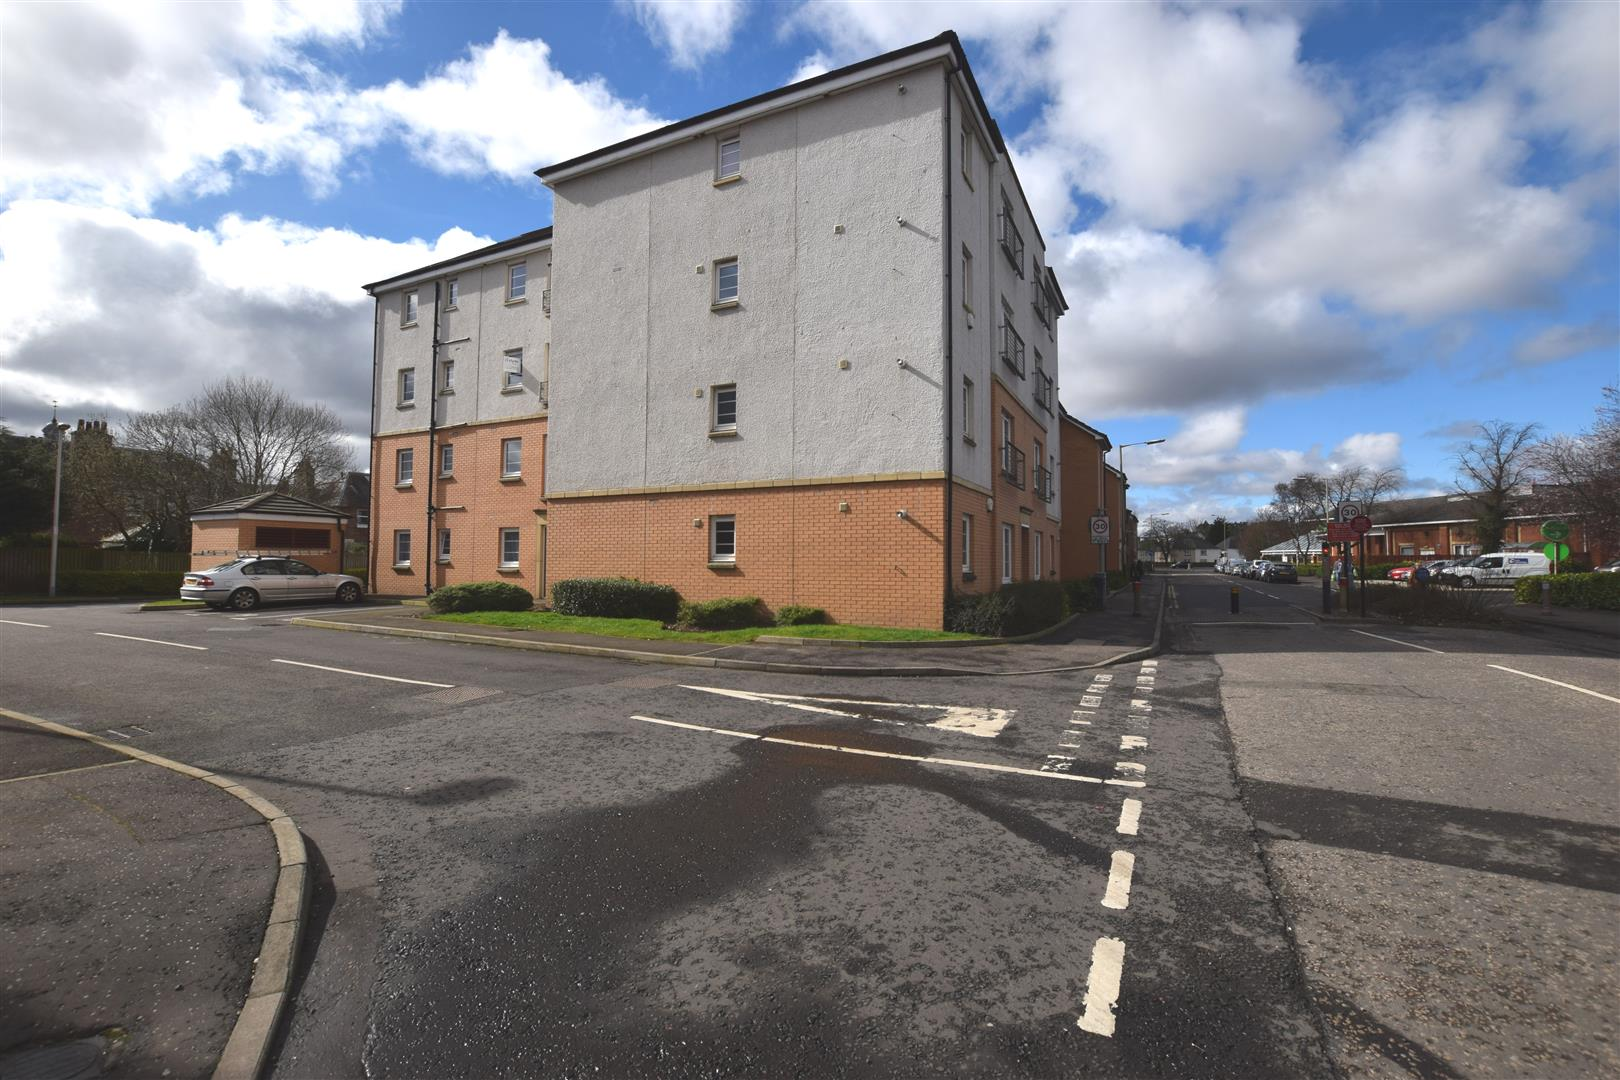 30, Florence Court, Perth, PH1 5BL, UK